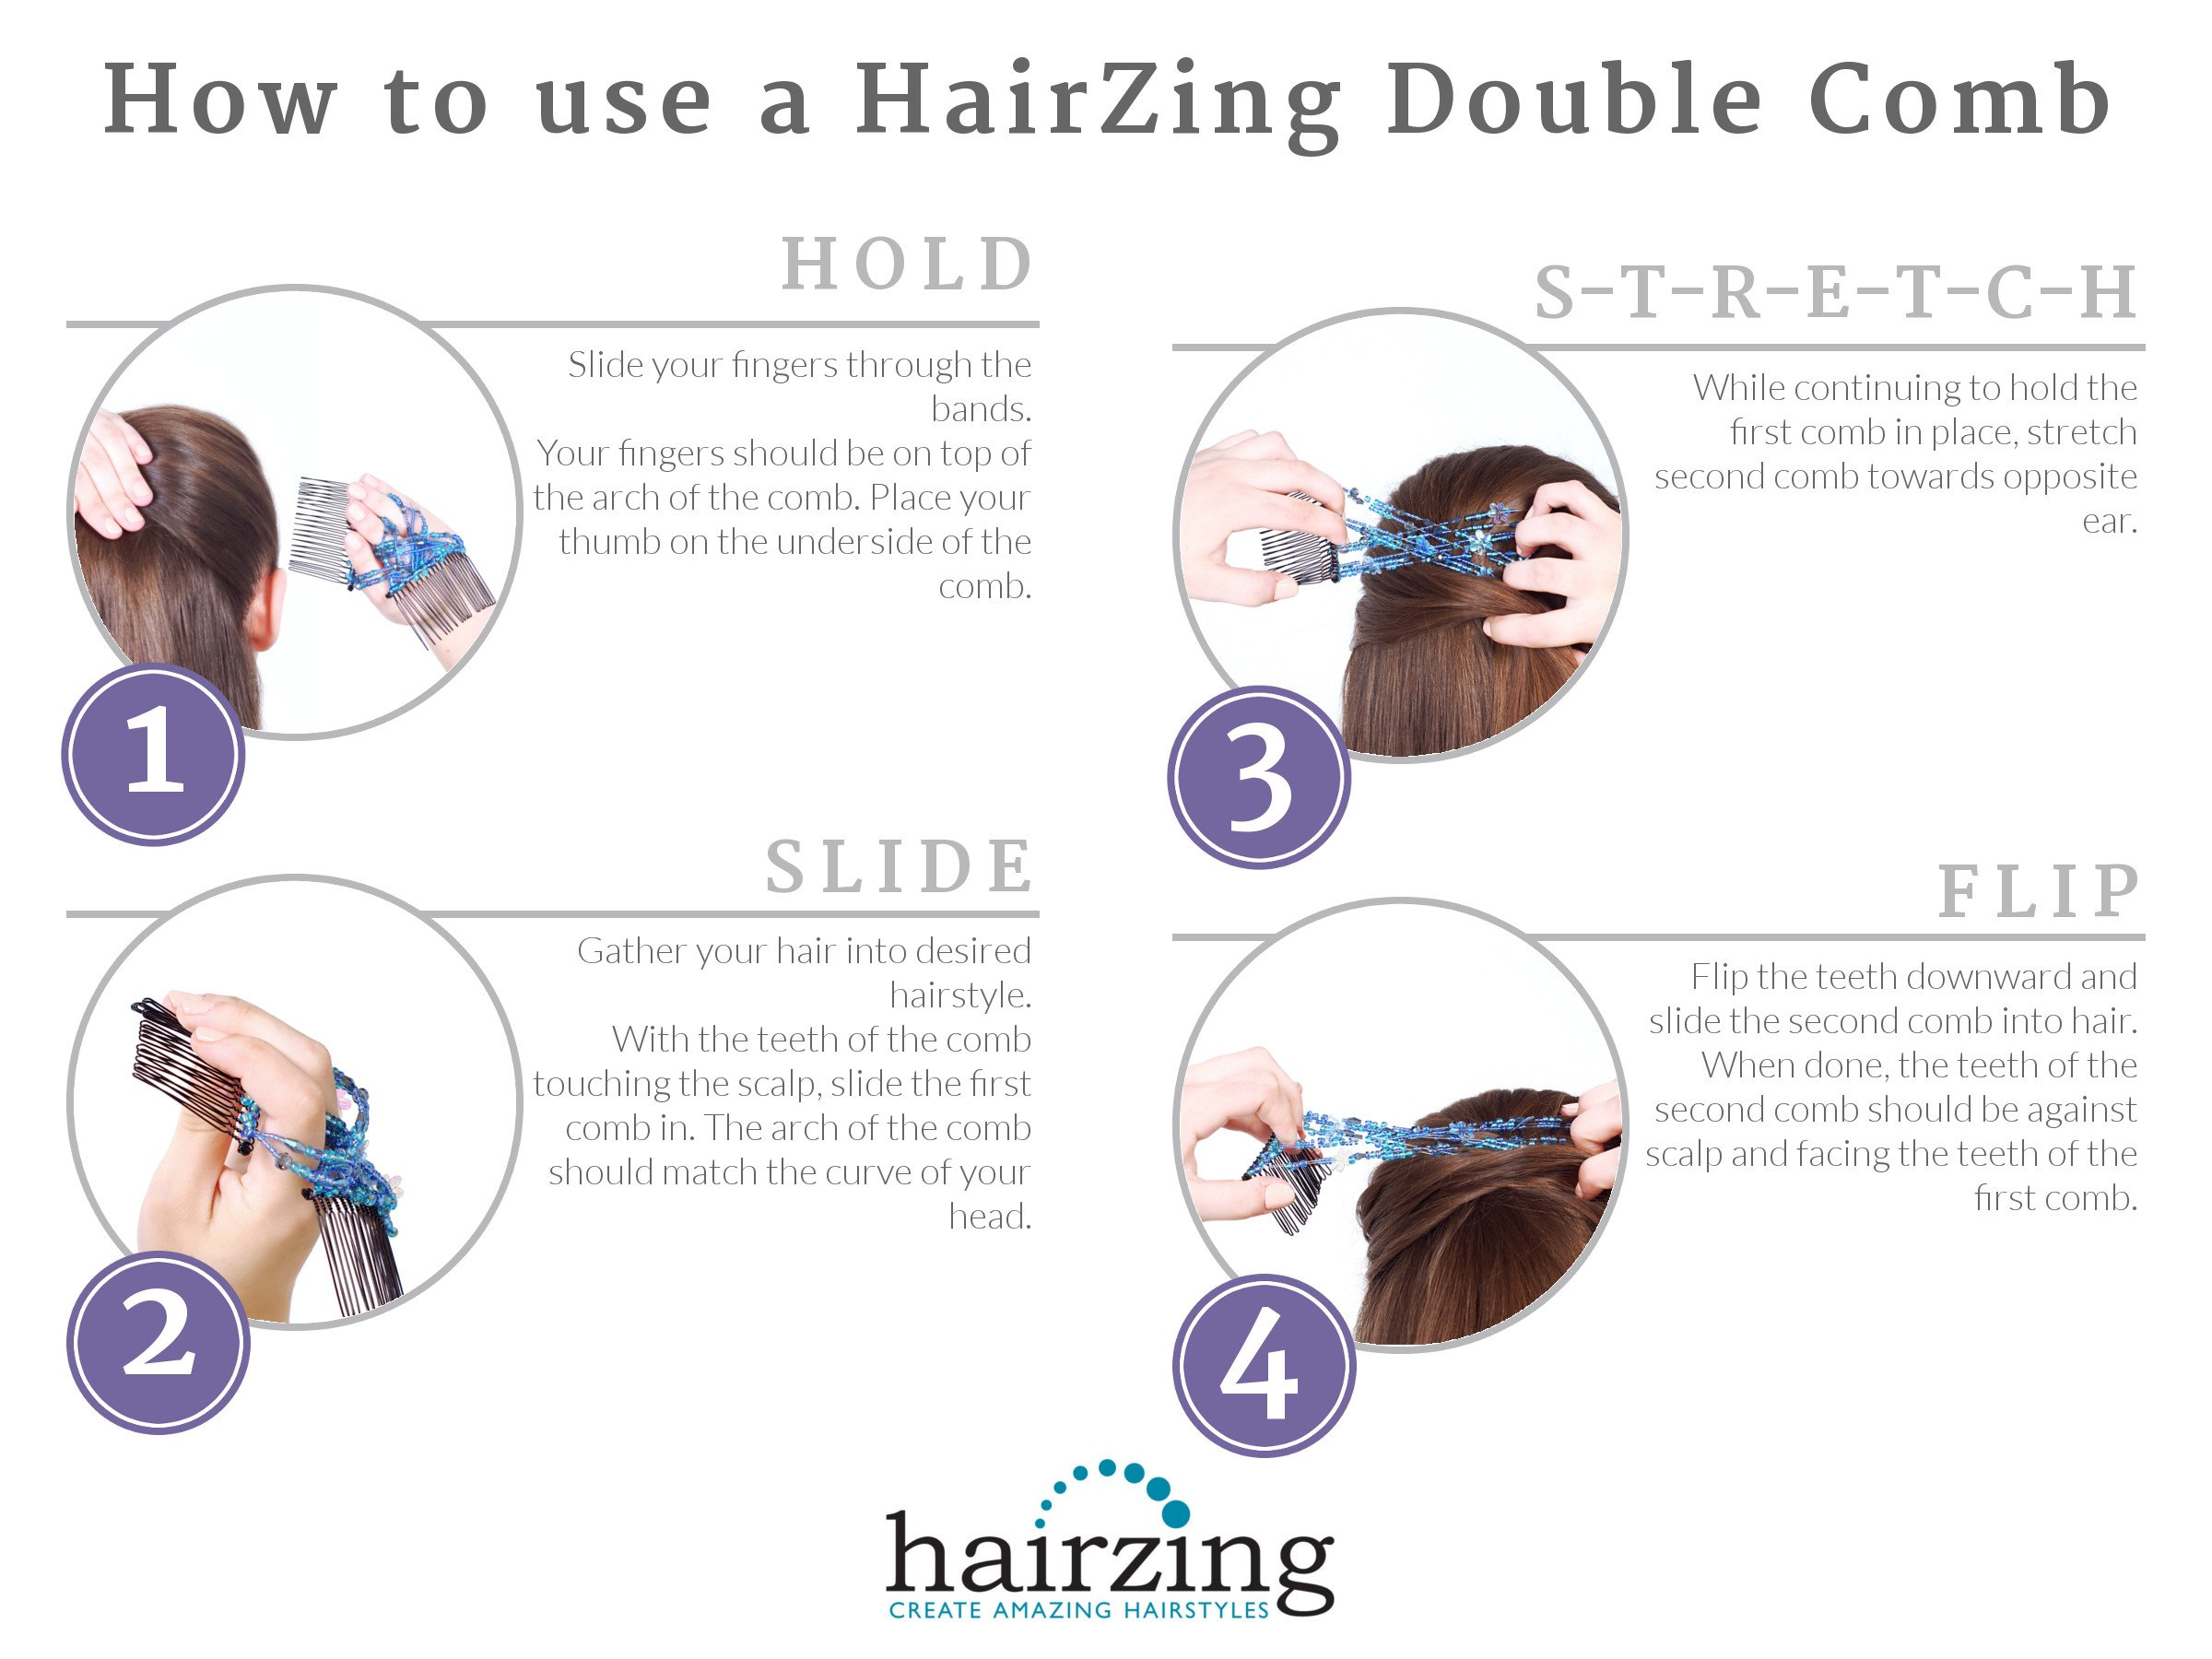 Double Elastic Hair Combs by HairZing - Clip for Thick, Curly, Kinky Hair - Put Your Hair Up in Seconds w/No Damage, Creases, or Pain - Comfy UpDo, Ponytail, French Twist, Bun (Pretzel Medium, Brown) by HairZing (Image #5)